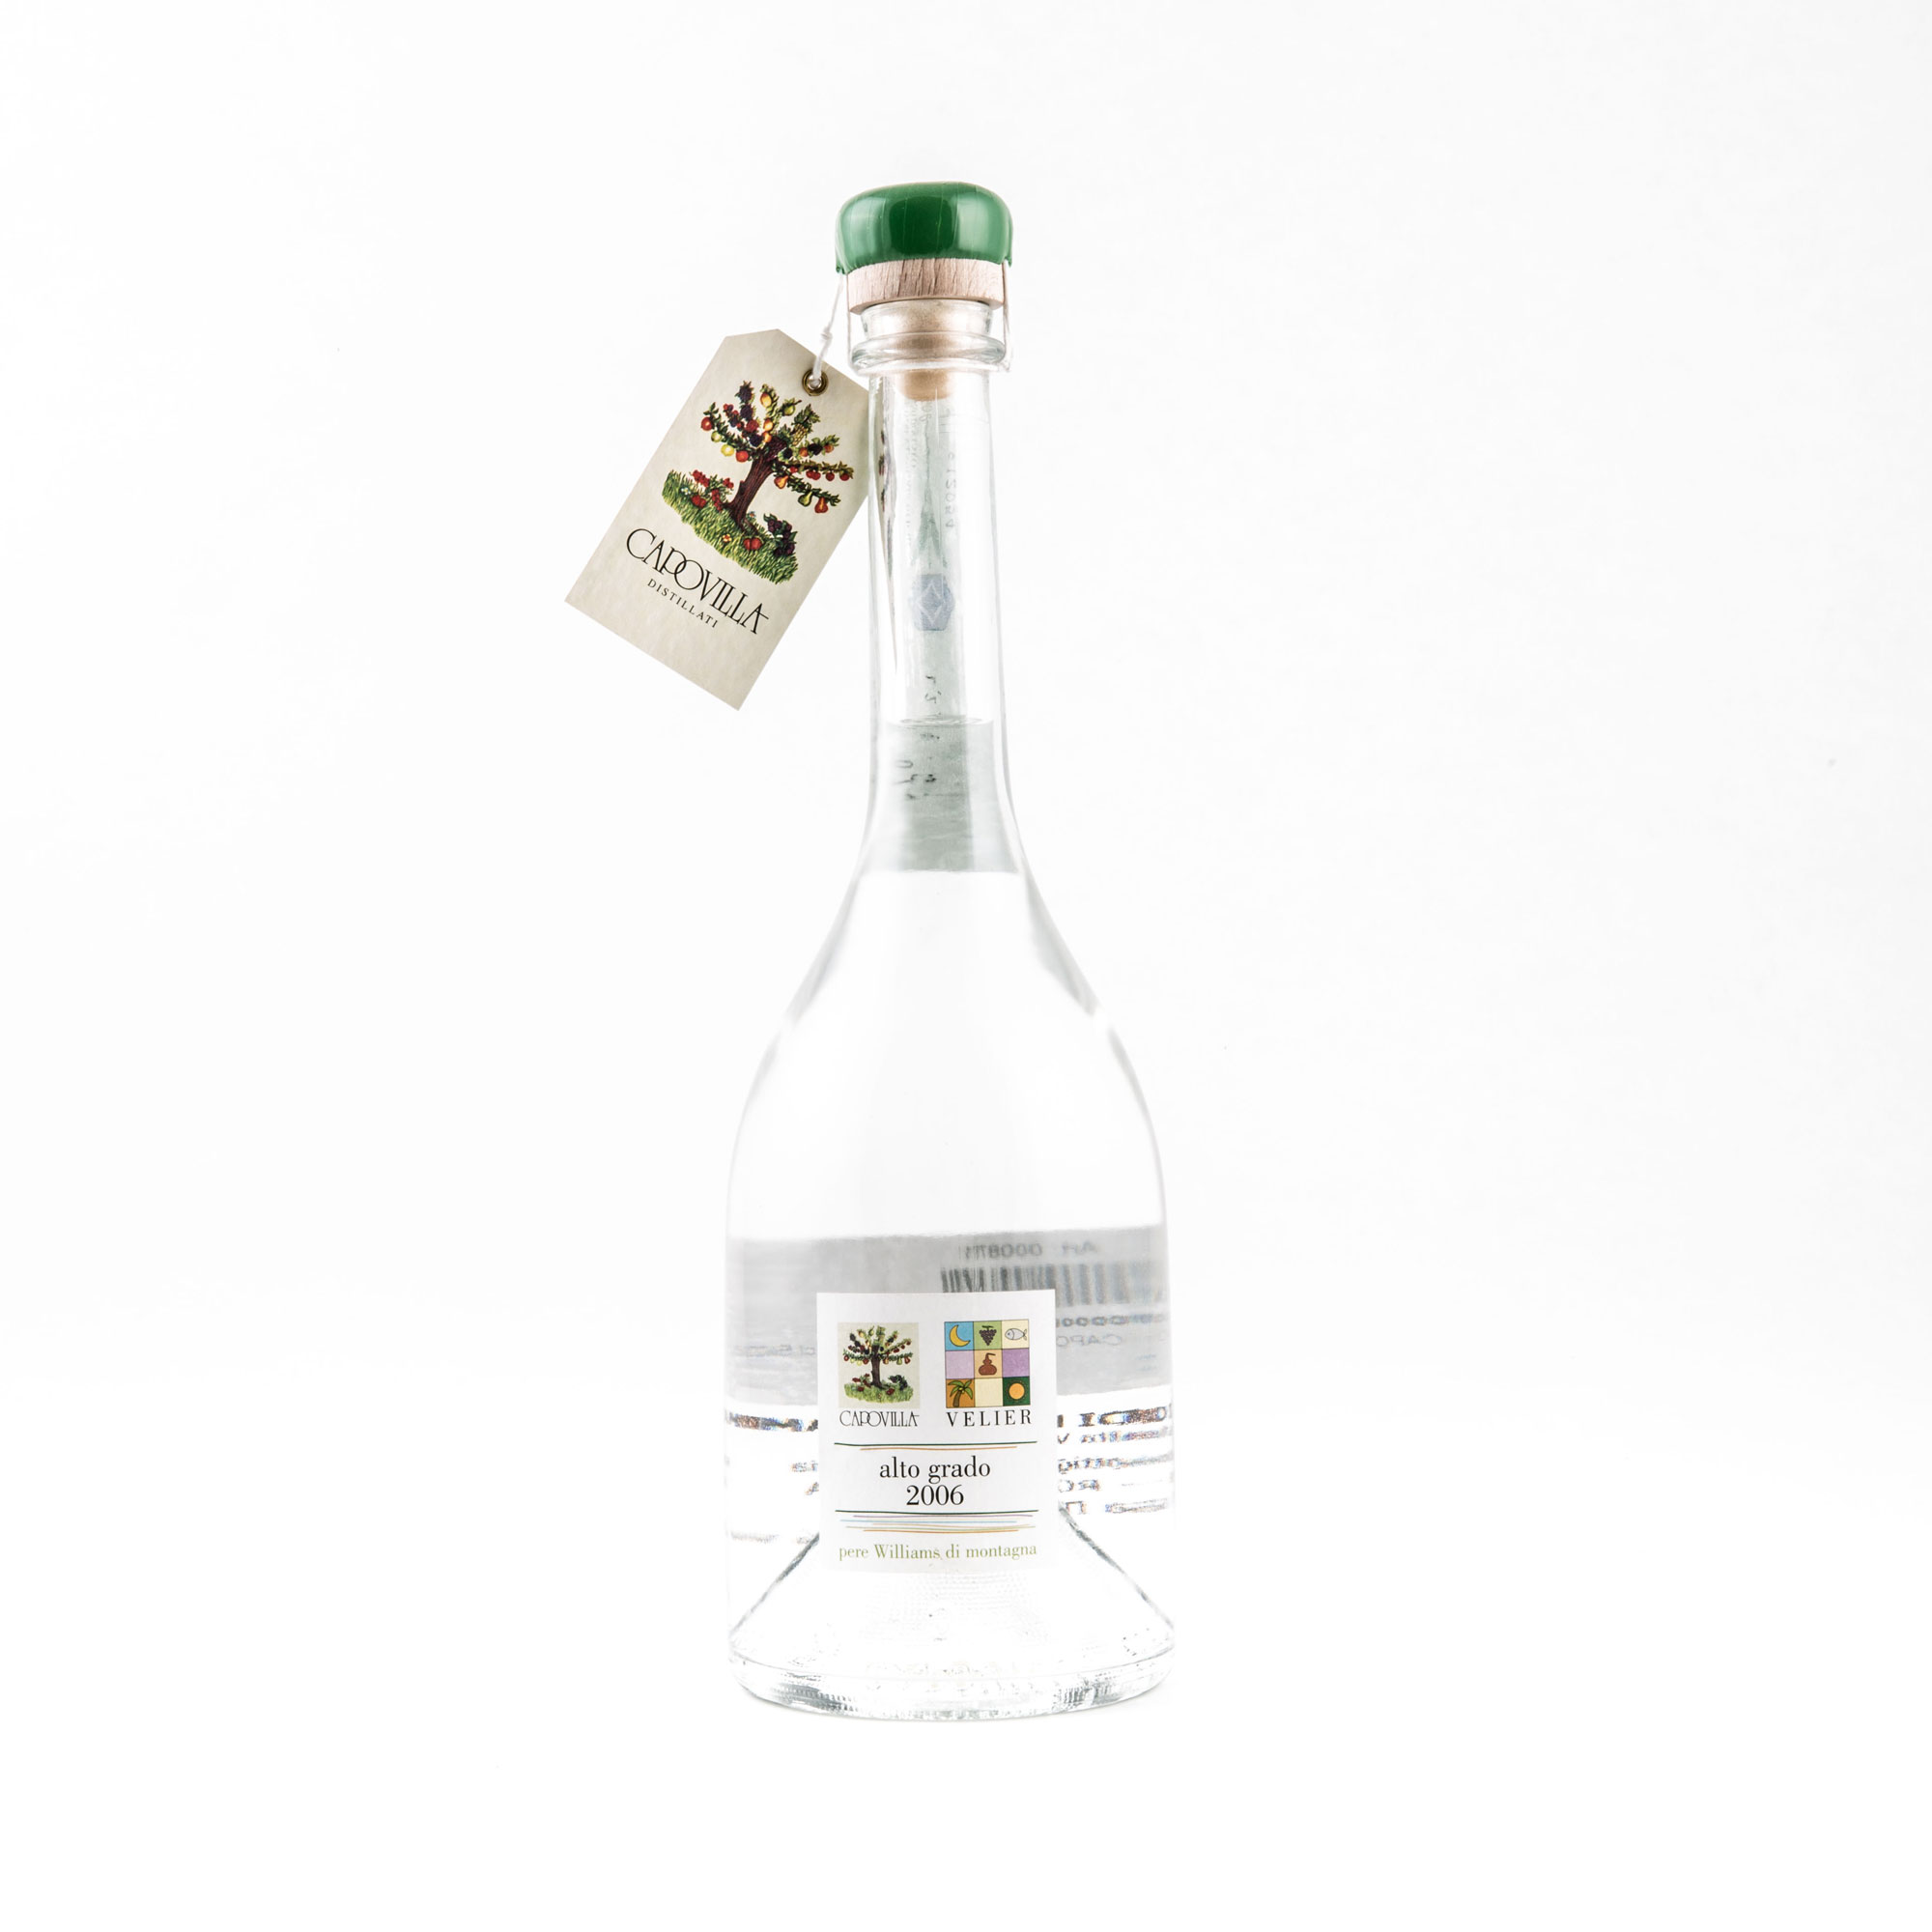 Distillato capovilla pere williams cl.50 - 45 e74084d78d7a